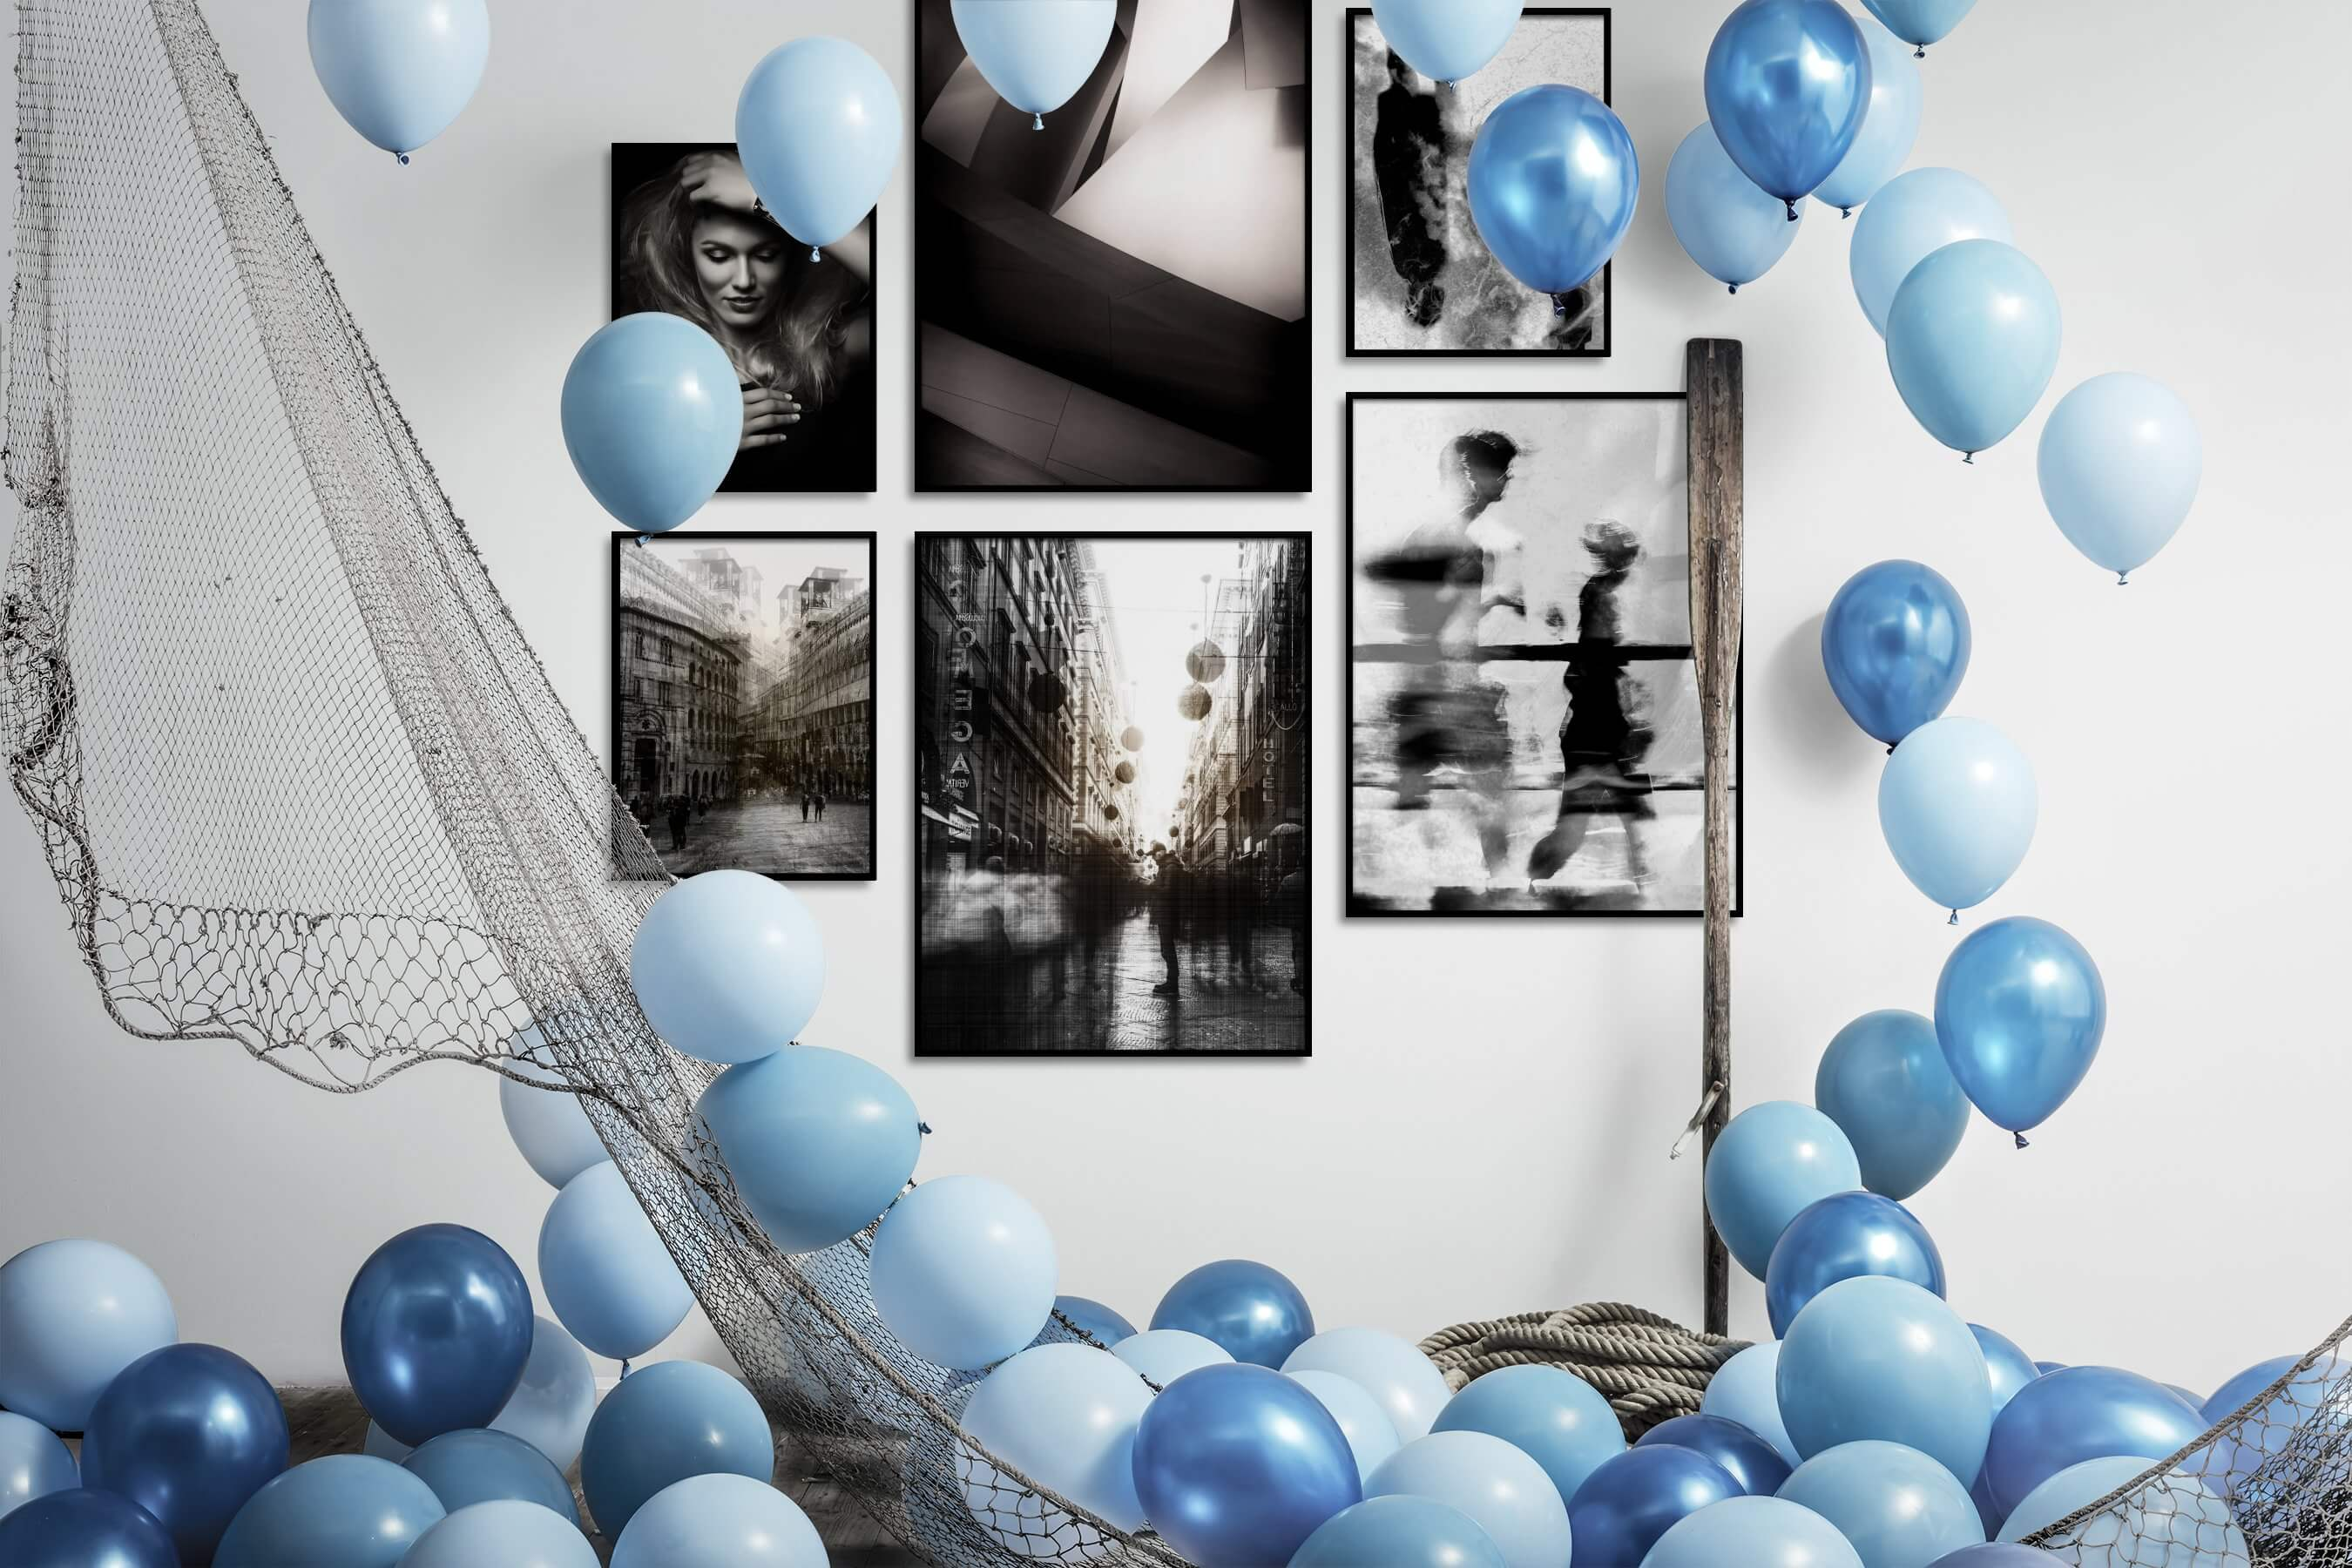 Gallery wall idea with six framed pictures arranged on a wall depicting Fashion & Beauty, Black & White, For the Moderate, For the Maximalist, City Life, and Artsy